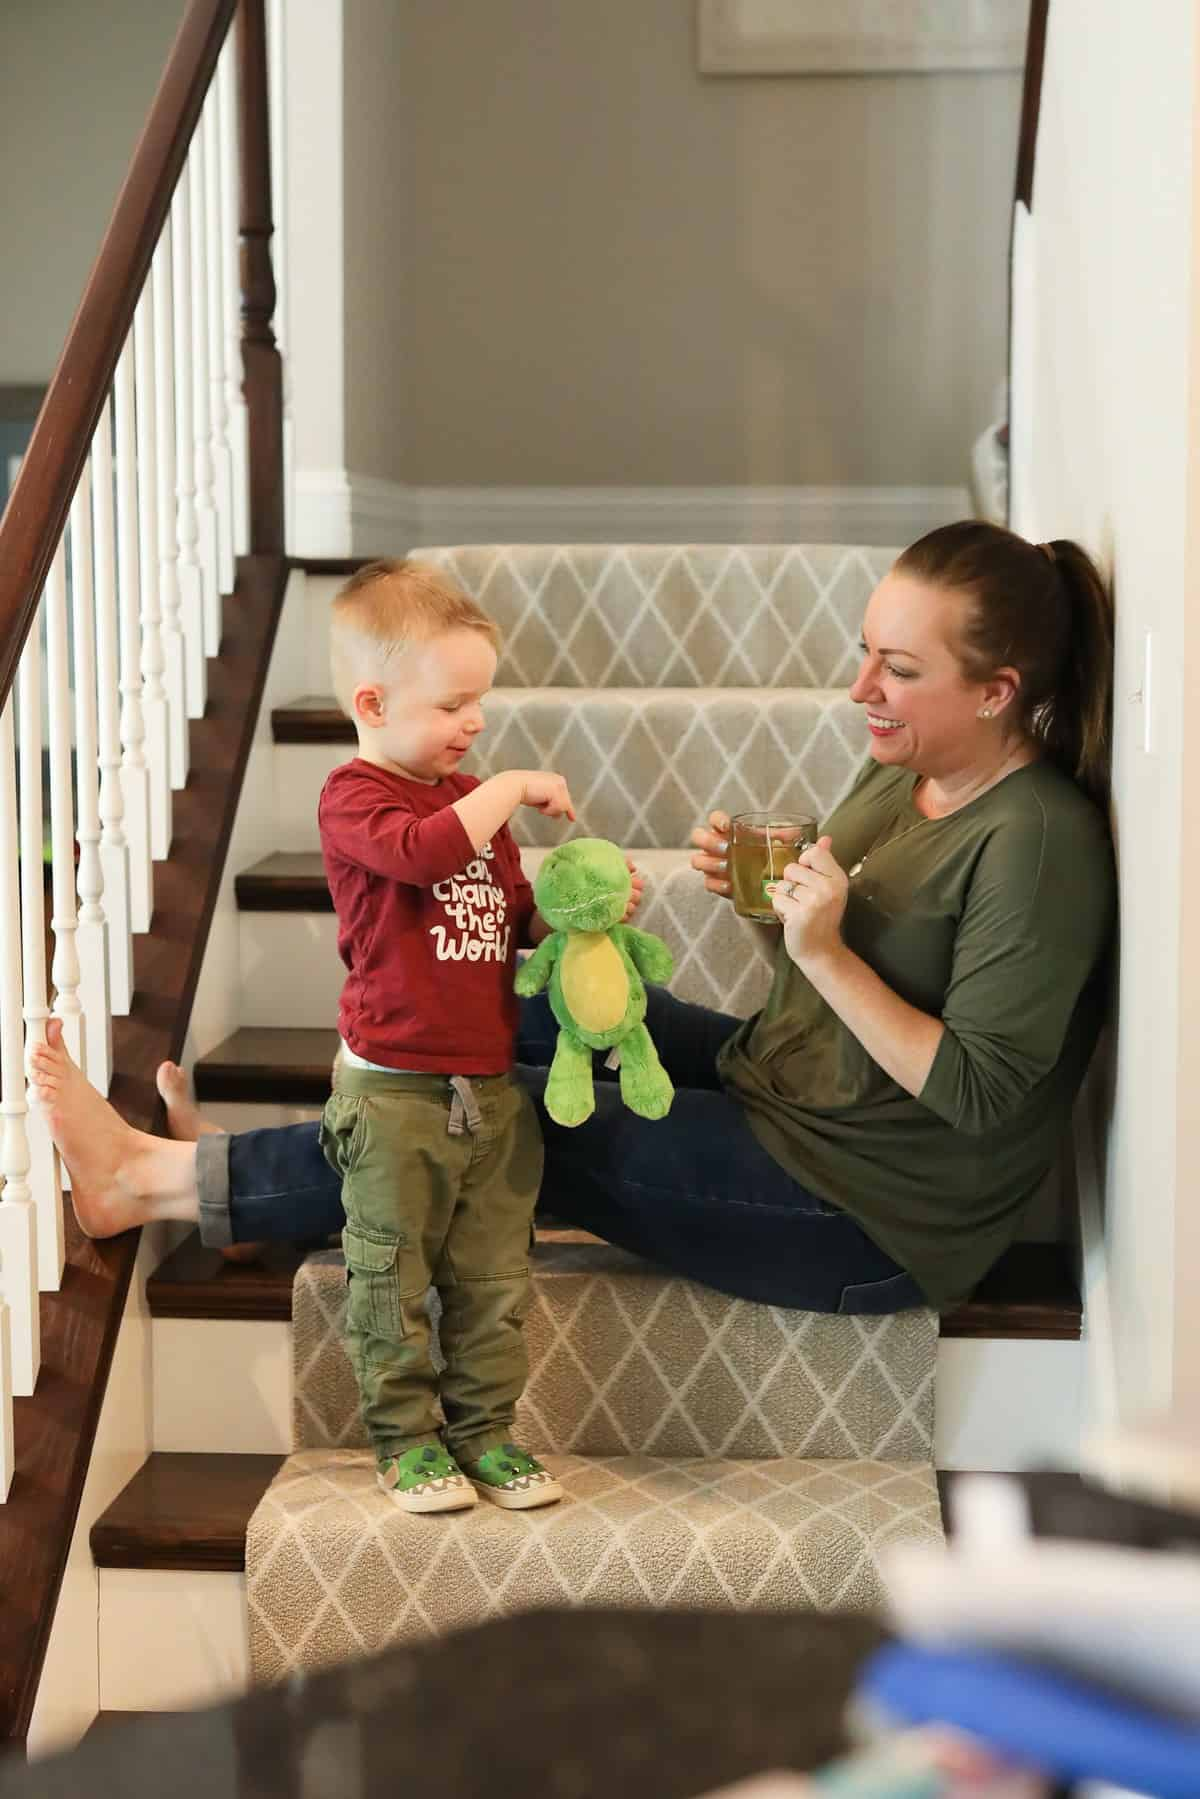 mom and son sitting on stairs with stuffed dinosaur and tea